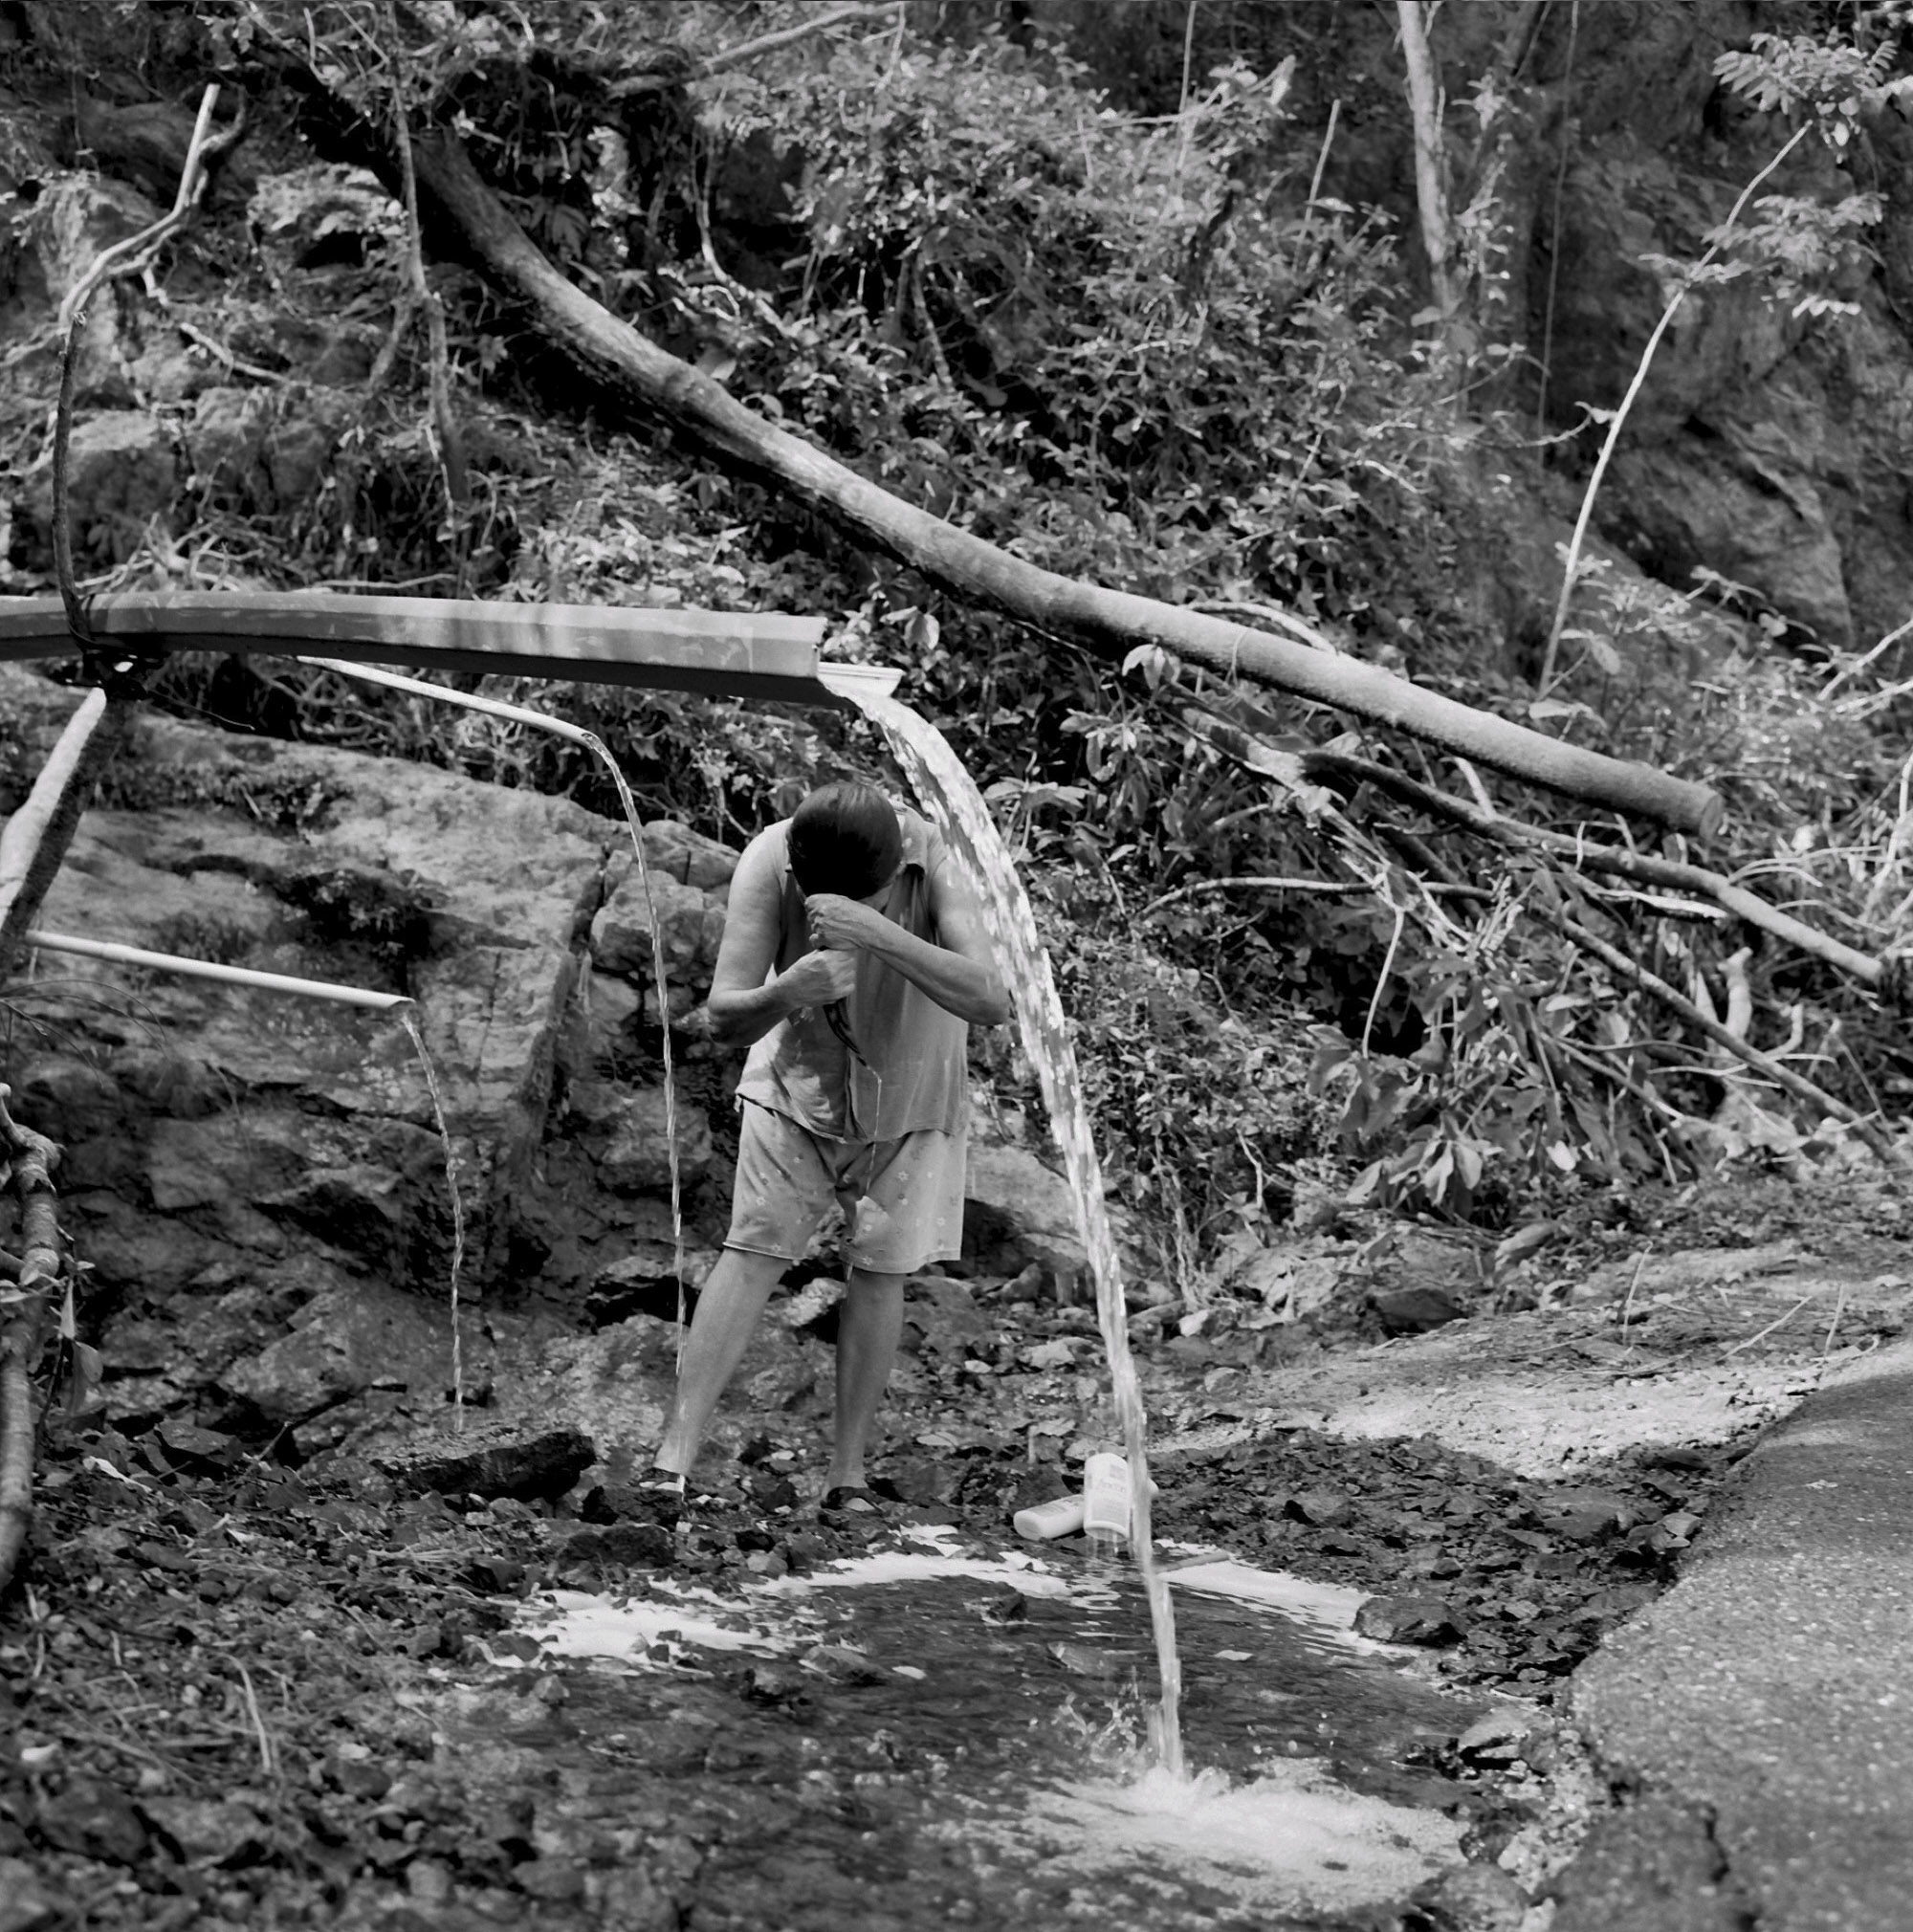 Residents of Utuado must collect water from the mountain stream to wash themselves and their clothes, and to cook.